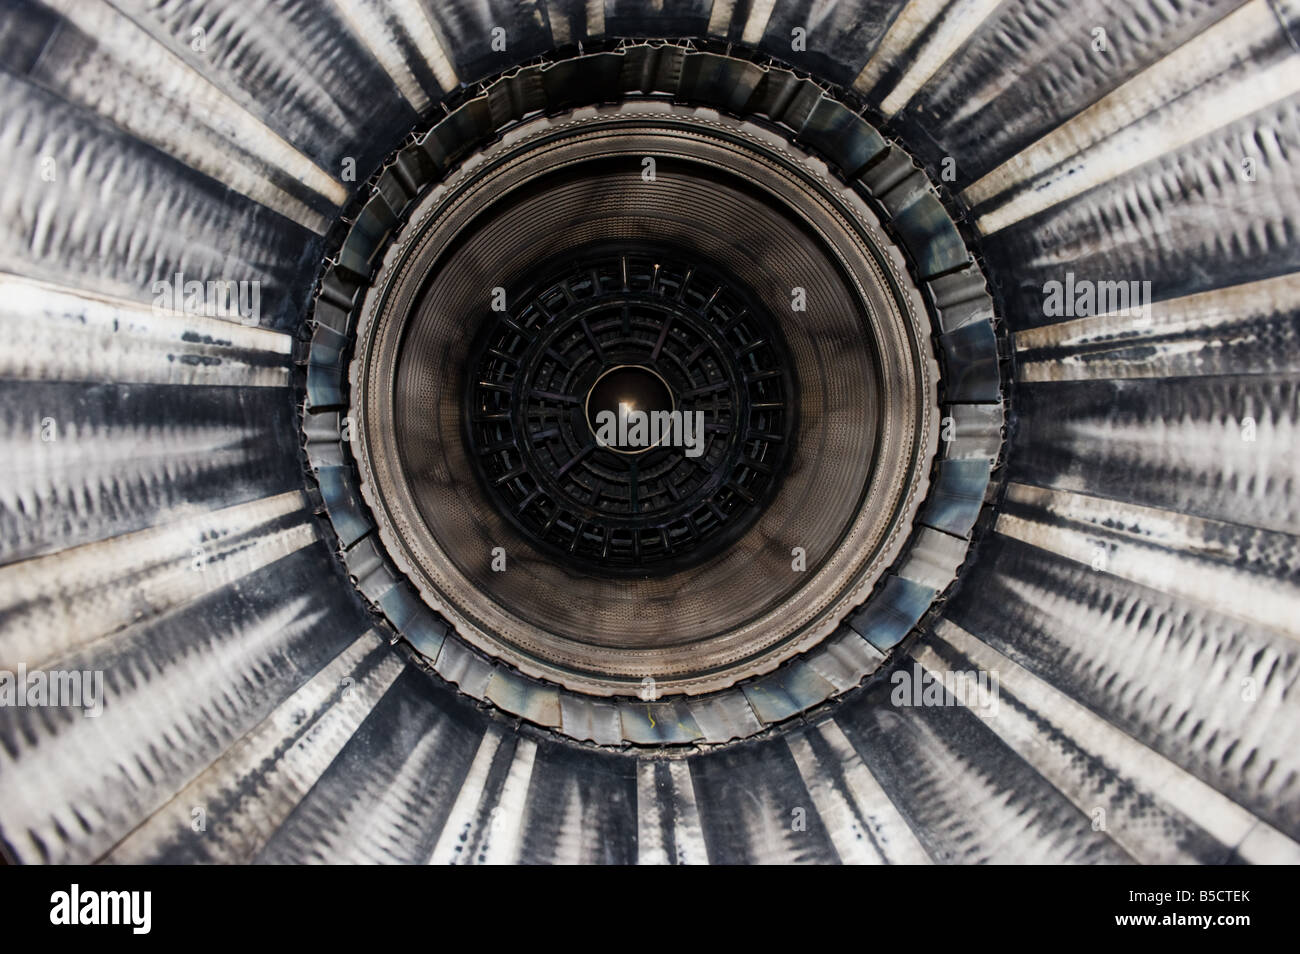 Close up of a F16 jet engine seen from the rear end - Stock Image